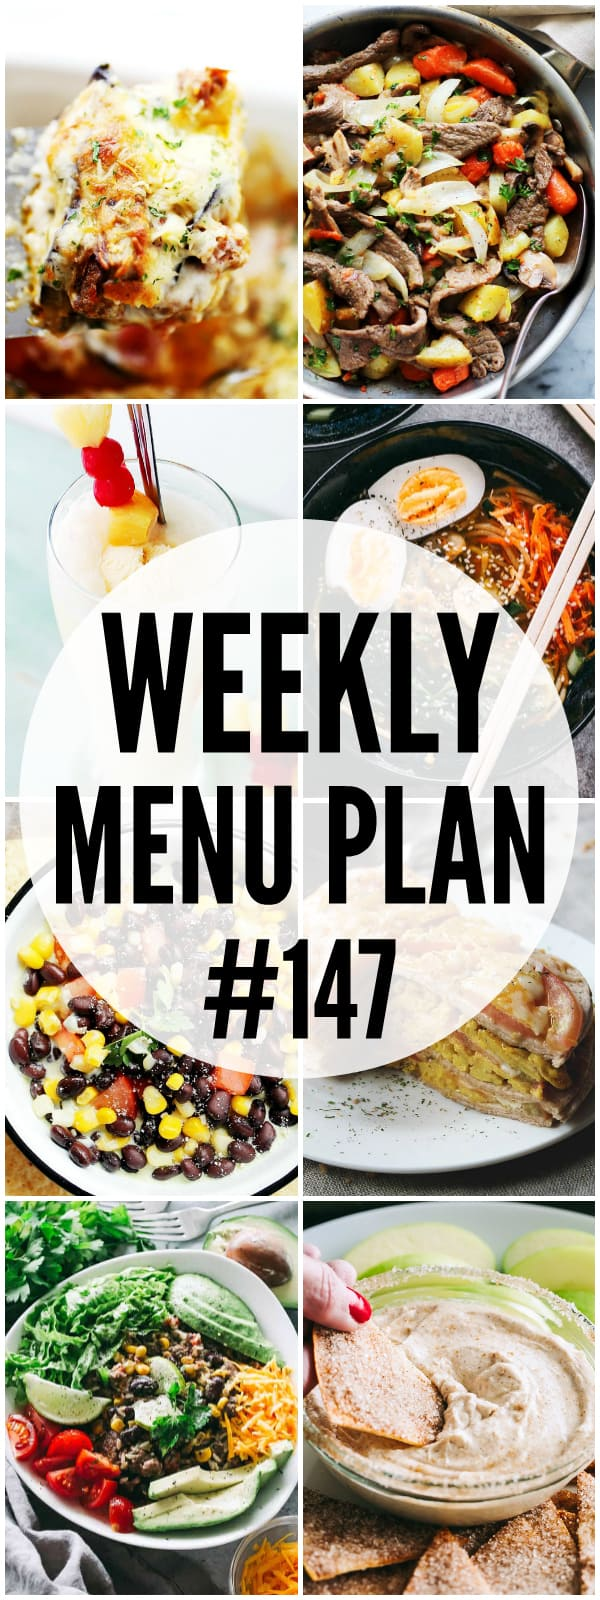 WEEKLY MENU PLAN (#147) - A delicious collection of dinner, side dish and dessert recipes to help you plan your weekly menu and make life easier for you!